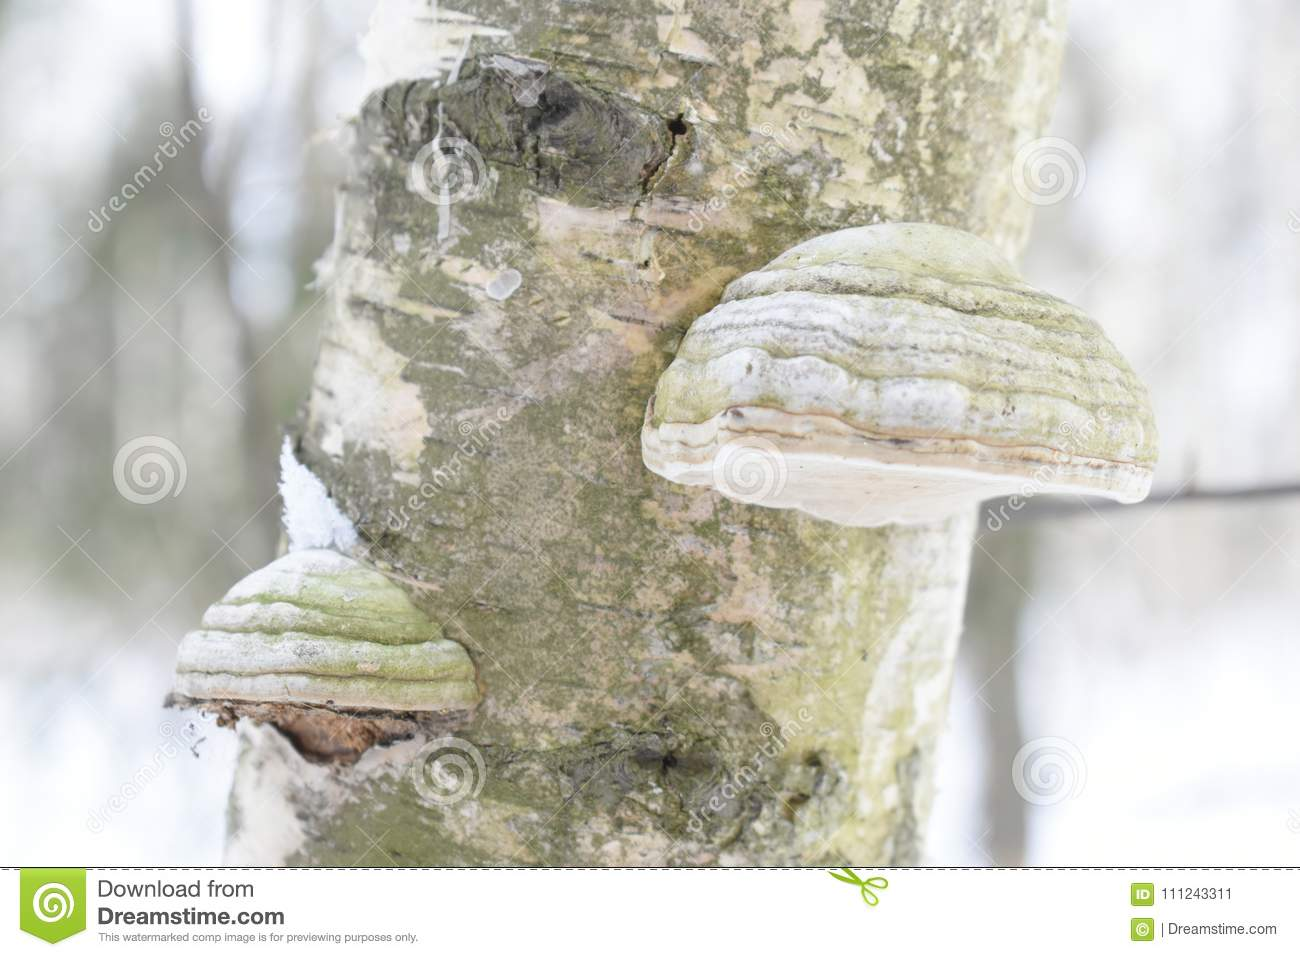 Fomes fomentarius commonly known as the tinder fungus, false tinder fungus, hoof fungus, tinder conk, tinder polypore or ice man